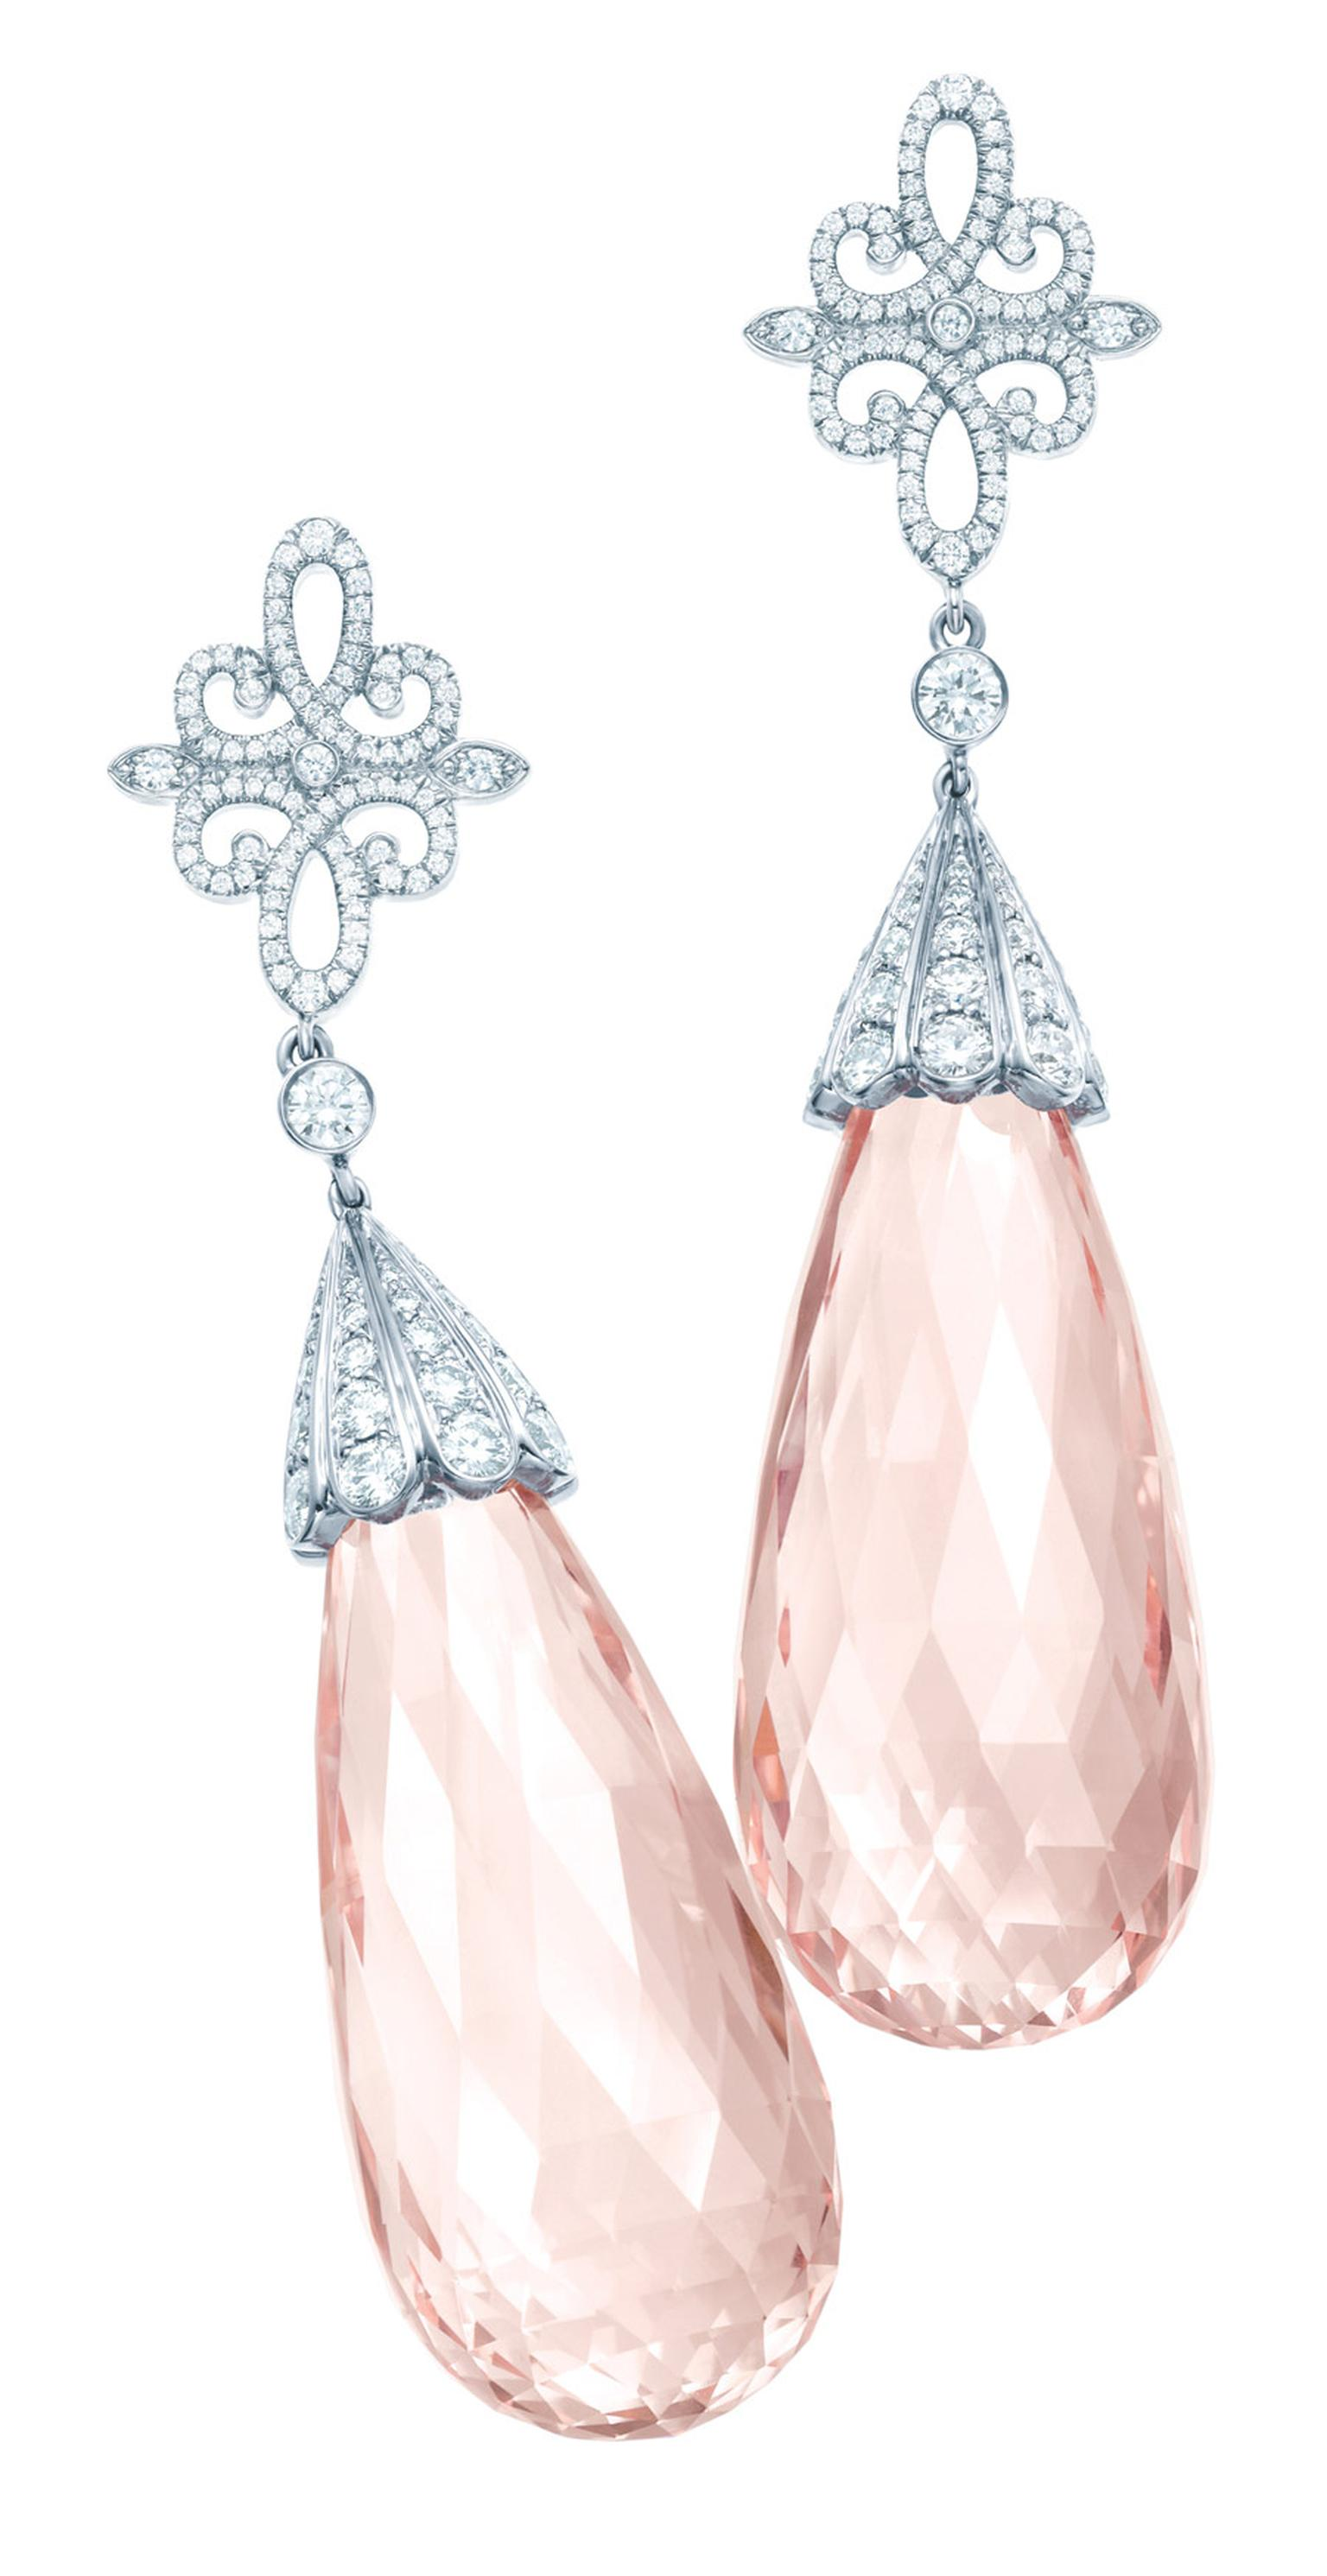 Tiffany-Moorganite-earrings.jpg